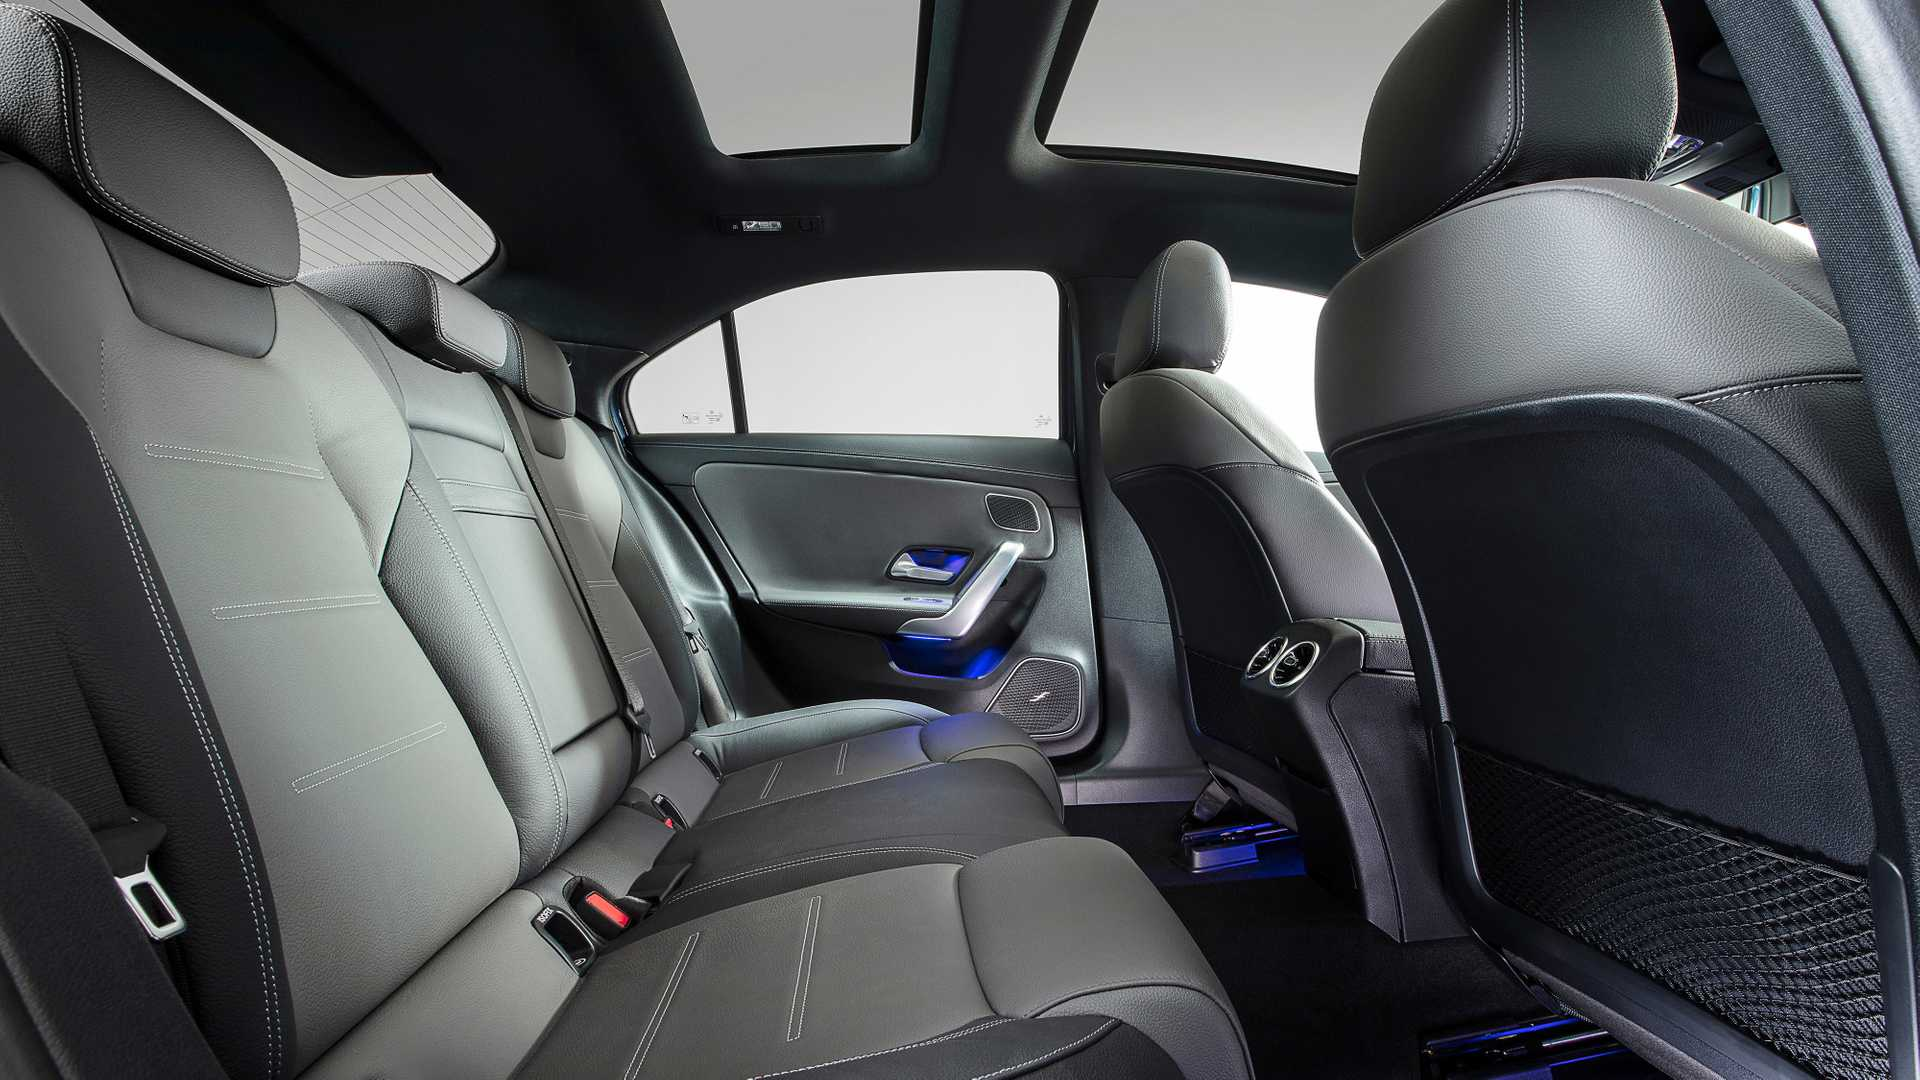 2020 Mercedes-AMG A35 L Sedan 4MATIC Interior Rear Seats Wallpaper (11)